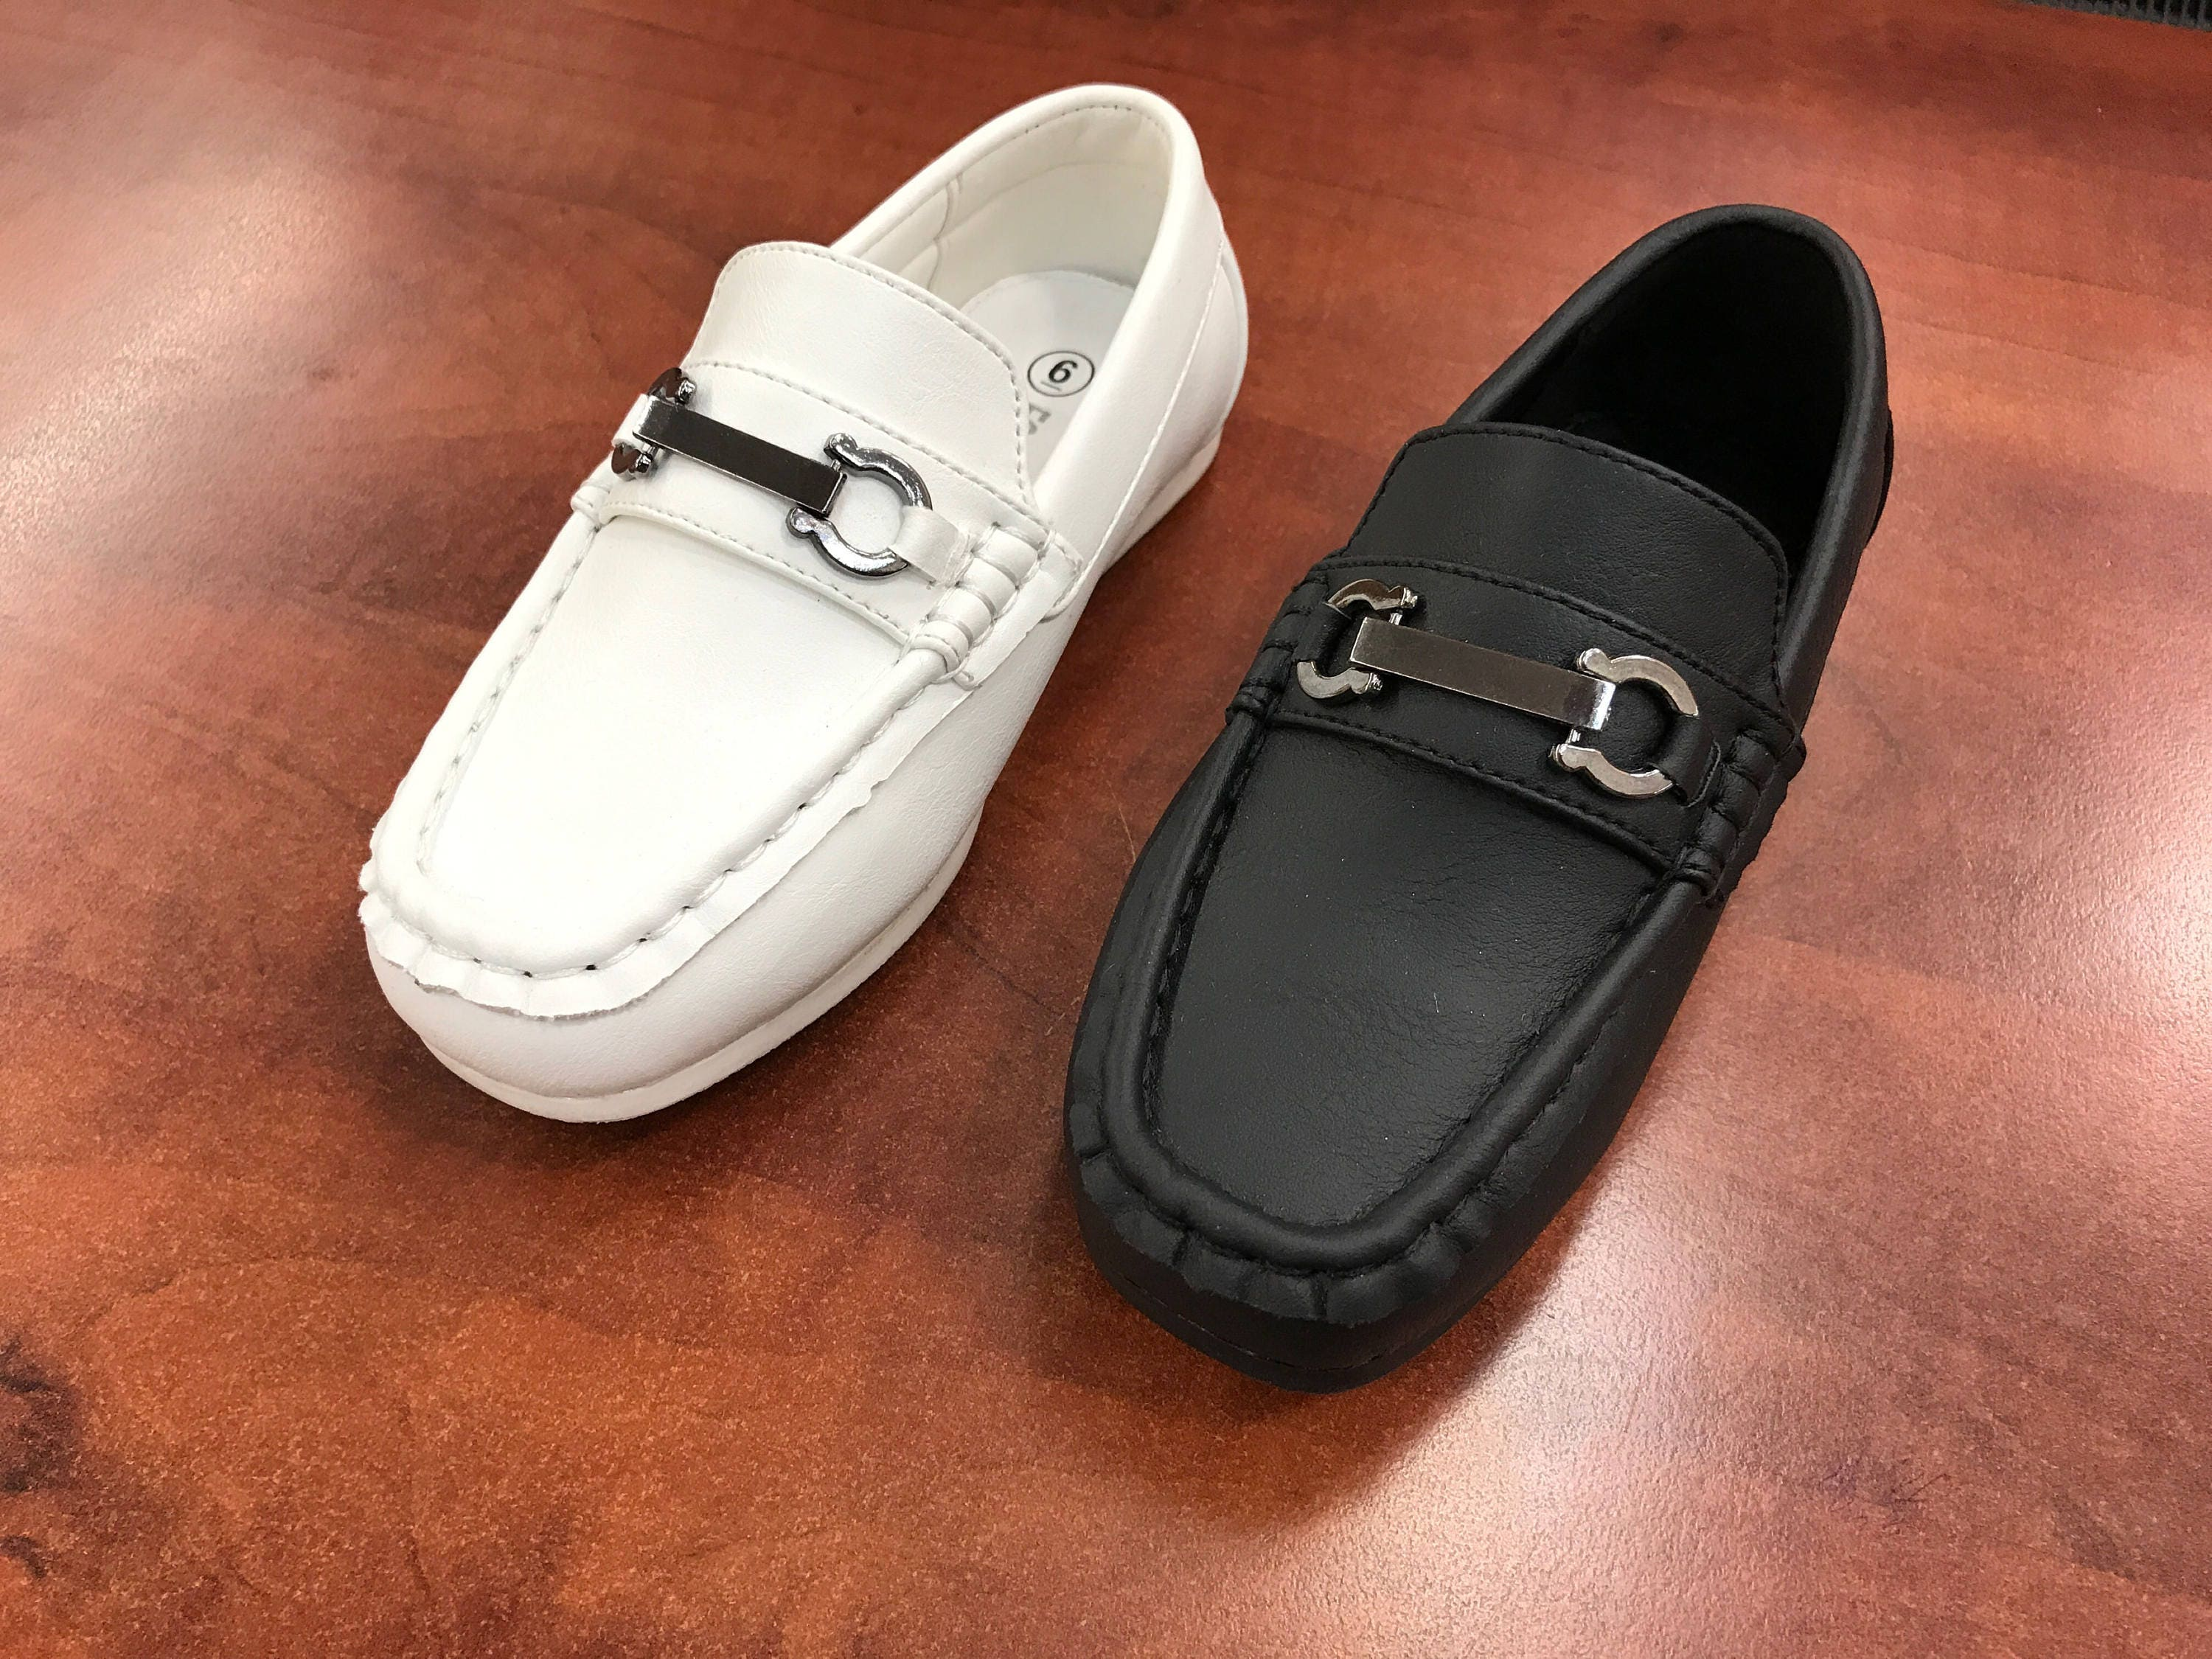 745d22c4fca0 Toddler to Youth Boys Classic Black White Vegan Faux Leather Loafer ...